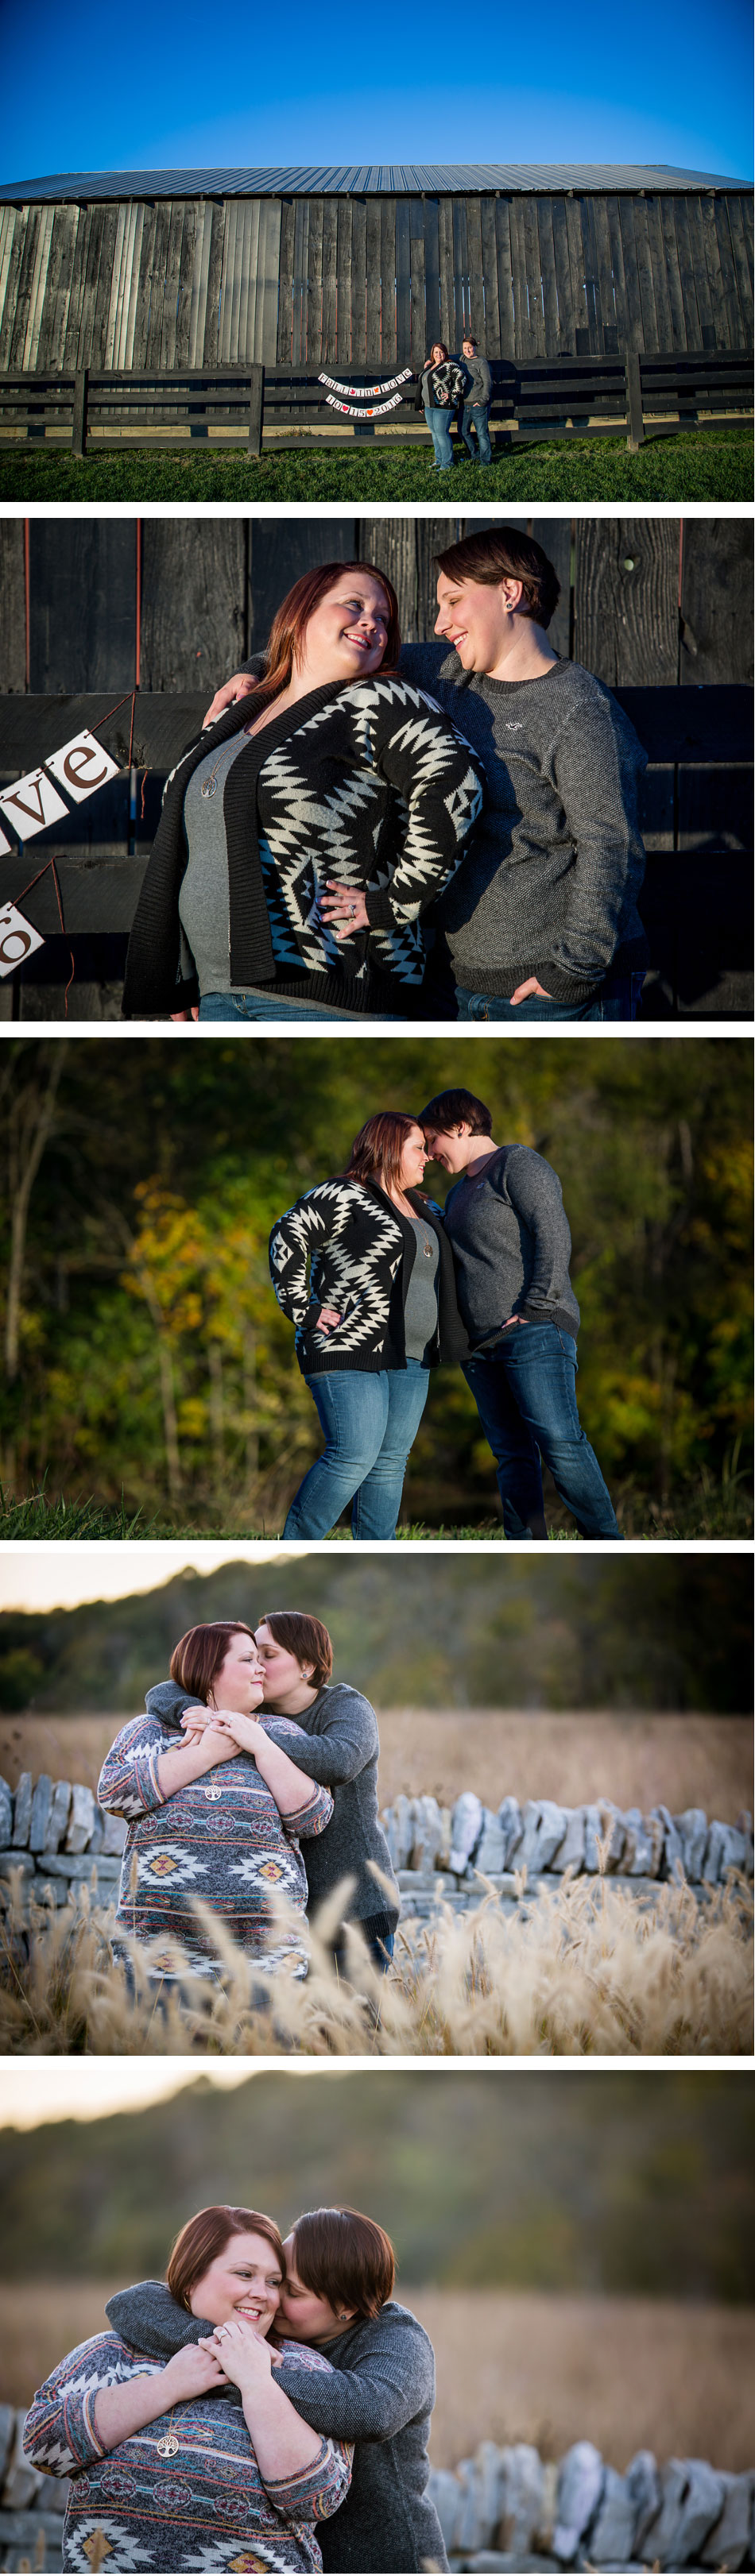 Lesbian Fall Engagement Photos